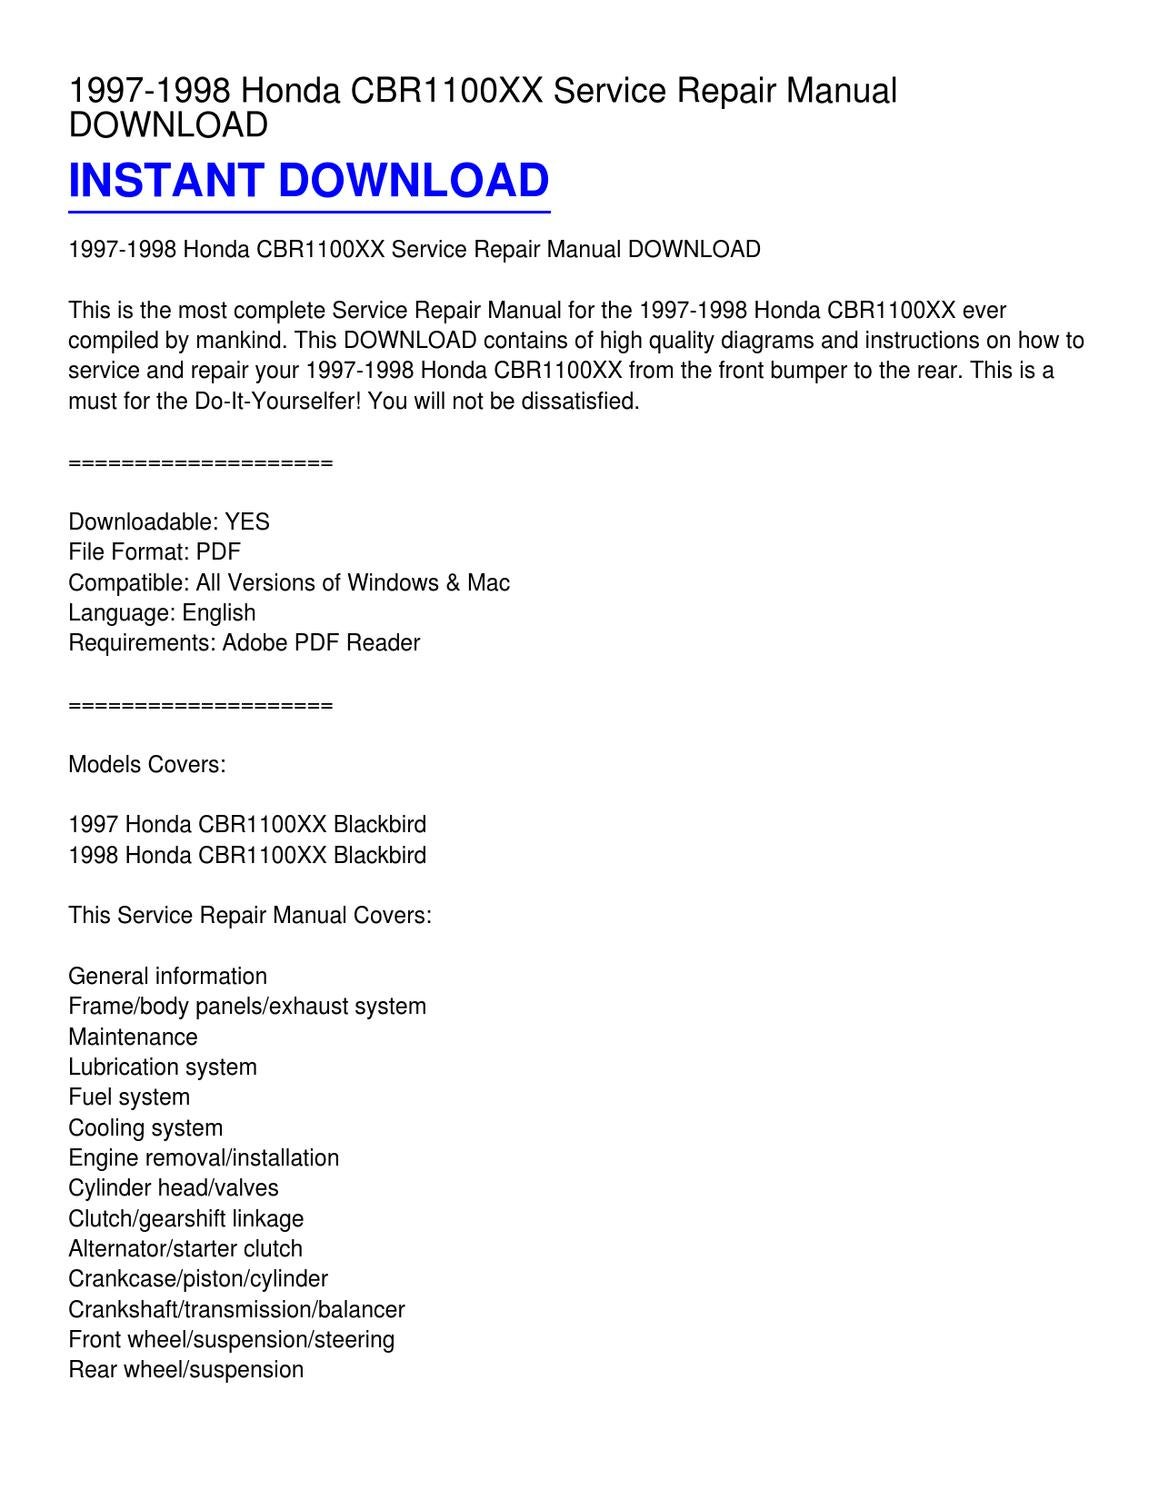 1997-1998 Honda CBR1100XX Service Repair Manual DOWNLOAD by Phillip Serrano  - issuu